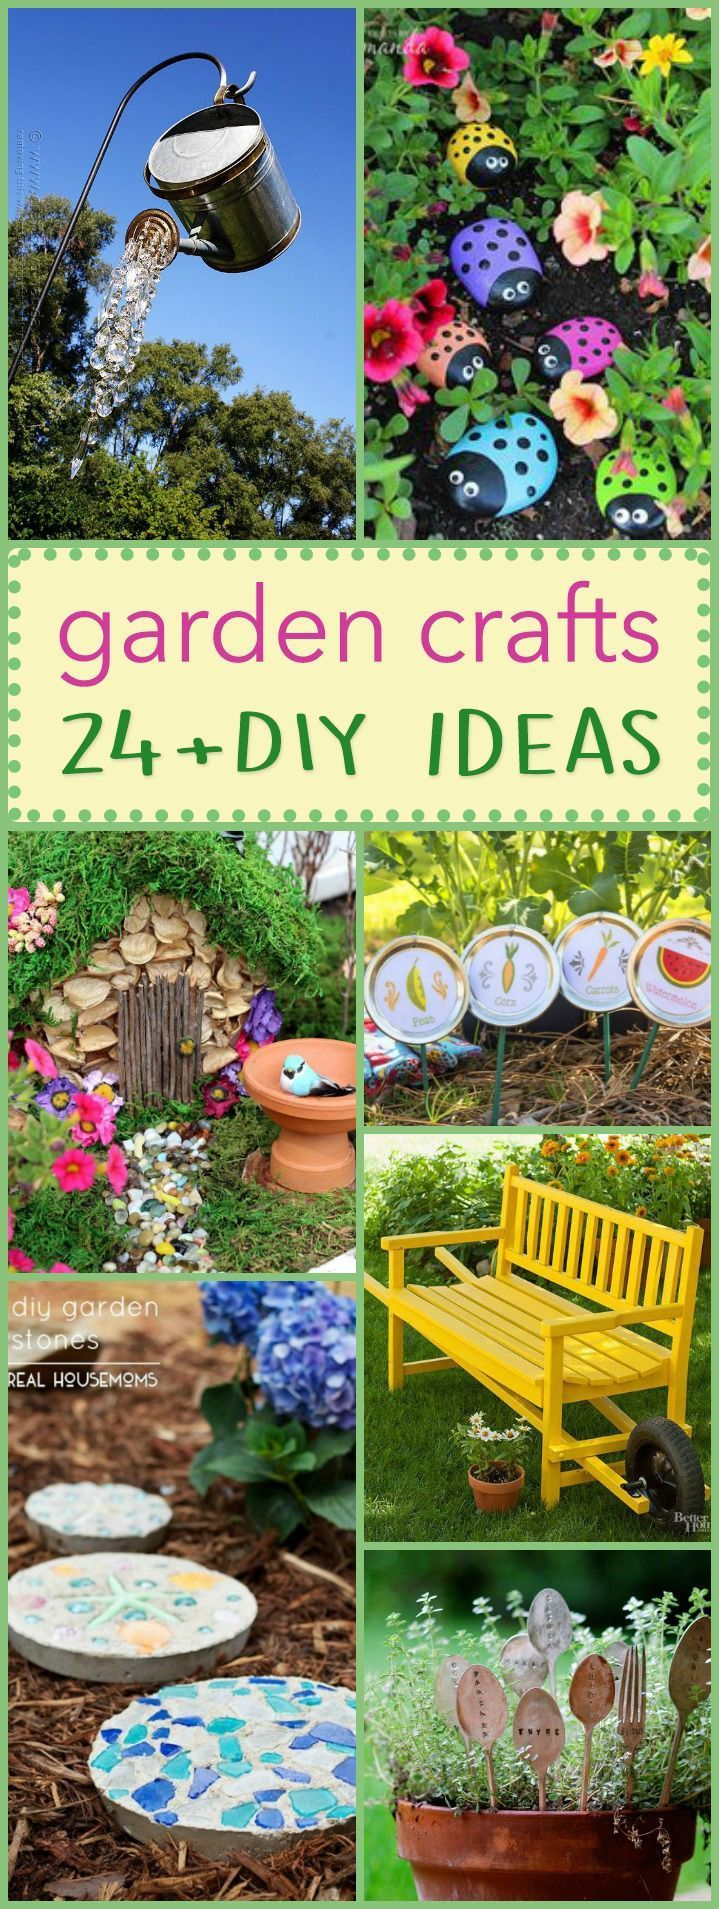 44 best SPRING Time images on Pinterest | Gardening, Bricolage and ...